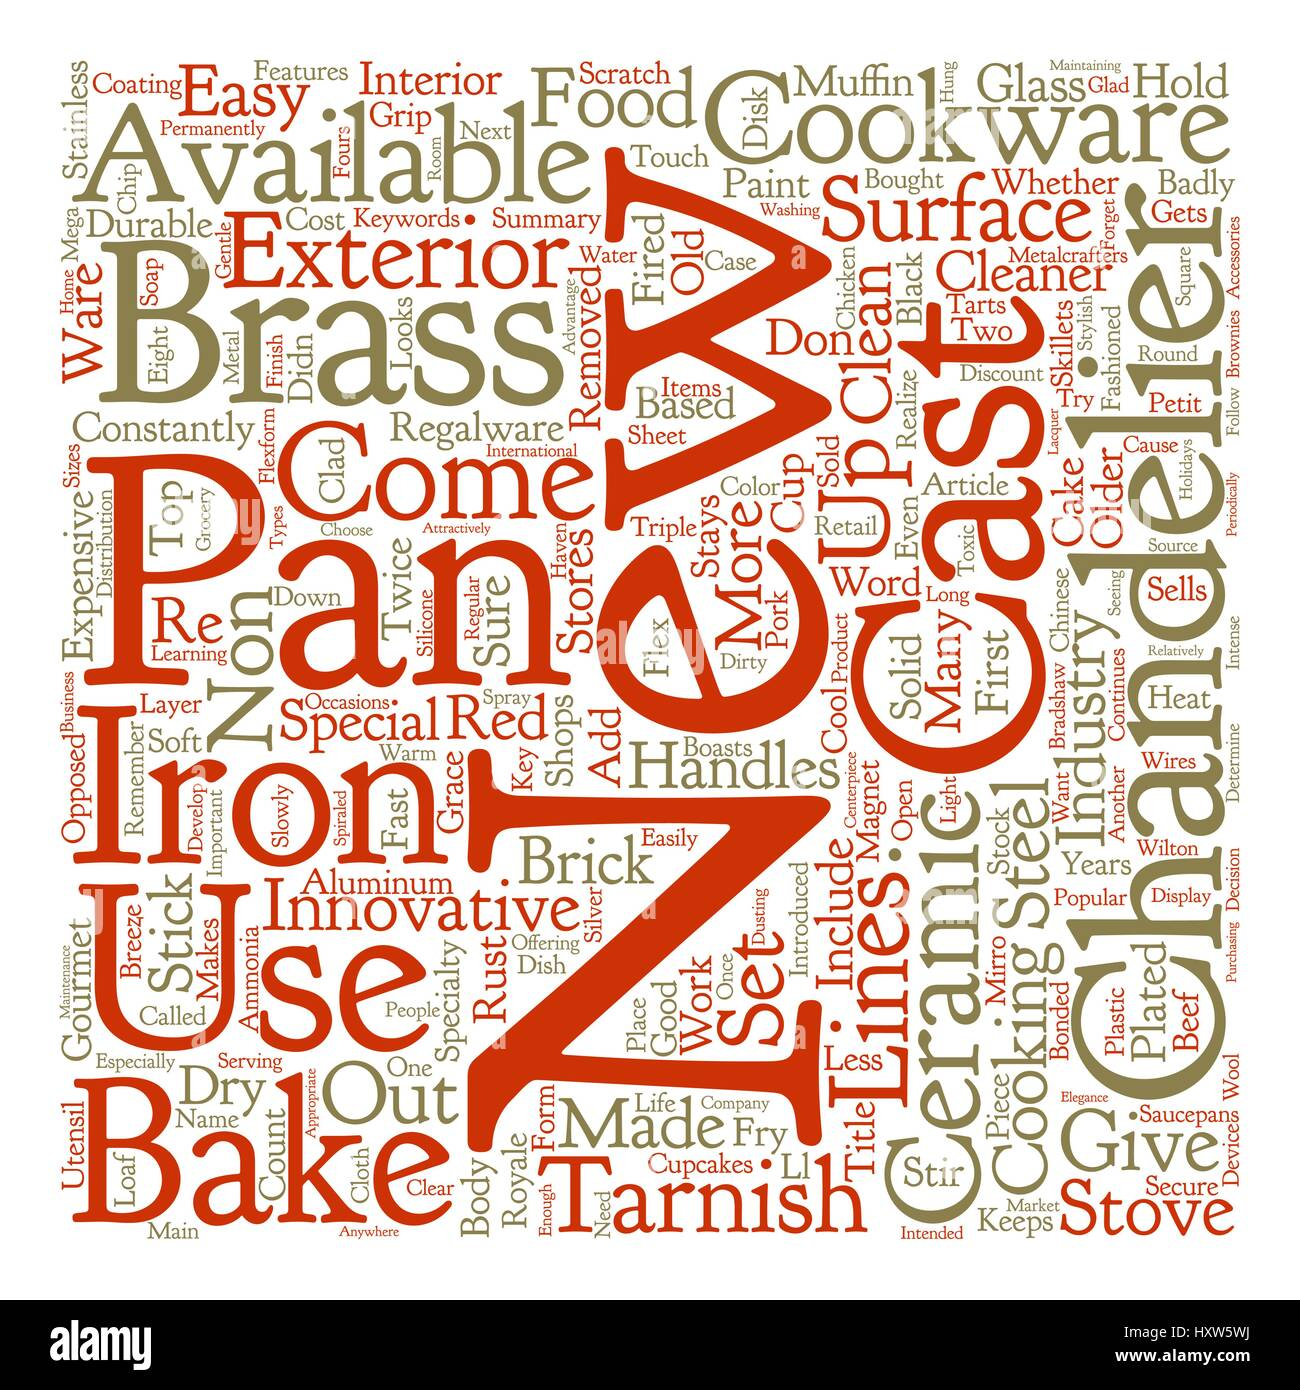 Cookware What s New In Cookware Word Cloud Concept Text Background - Stock Image